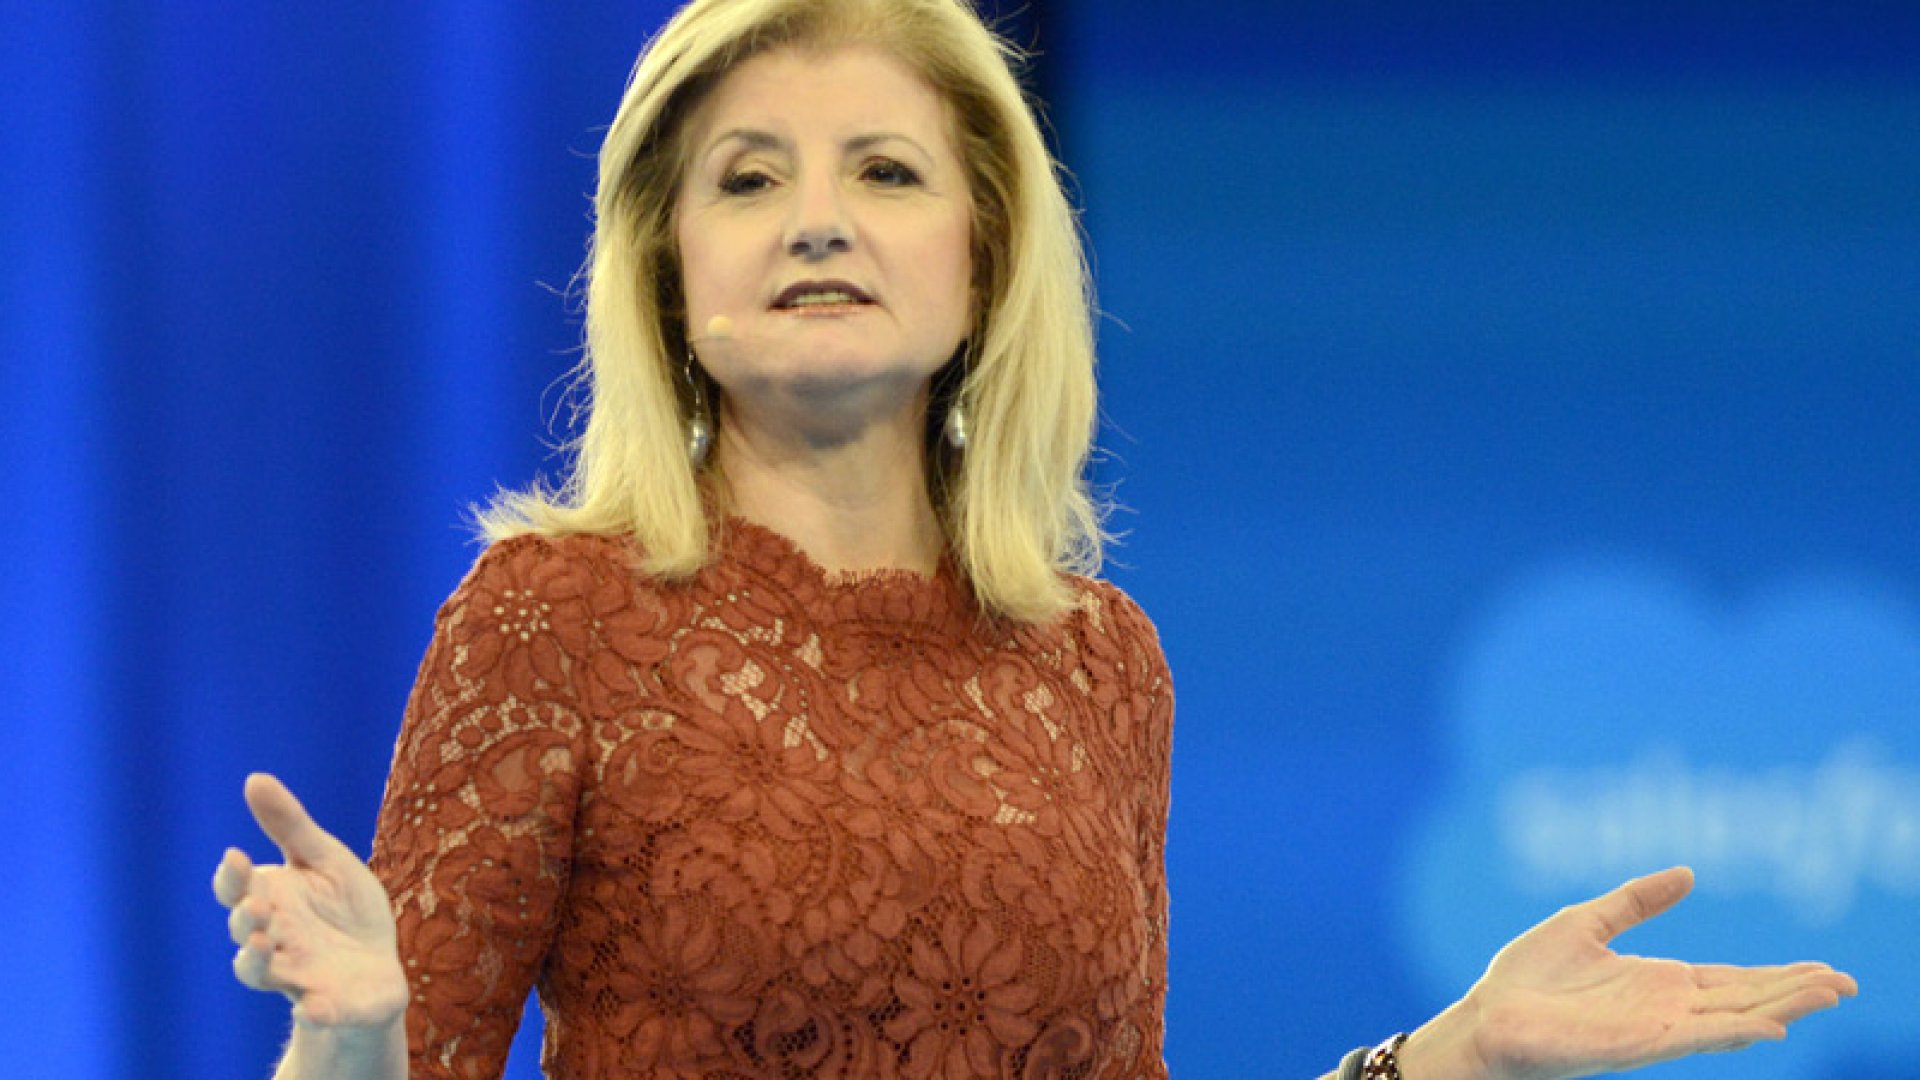 Arianna Huffington and U.S. CTO Megan Smith on Their Top Role Models